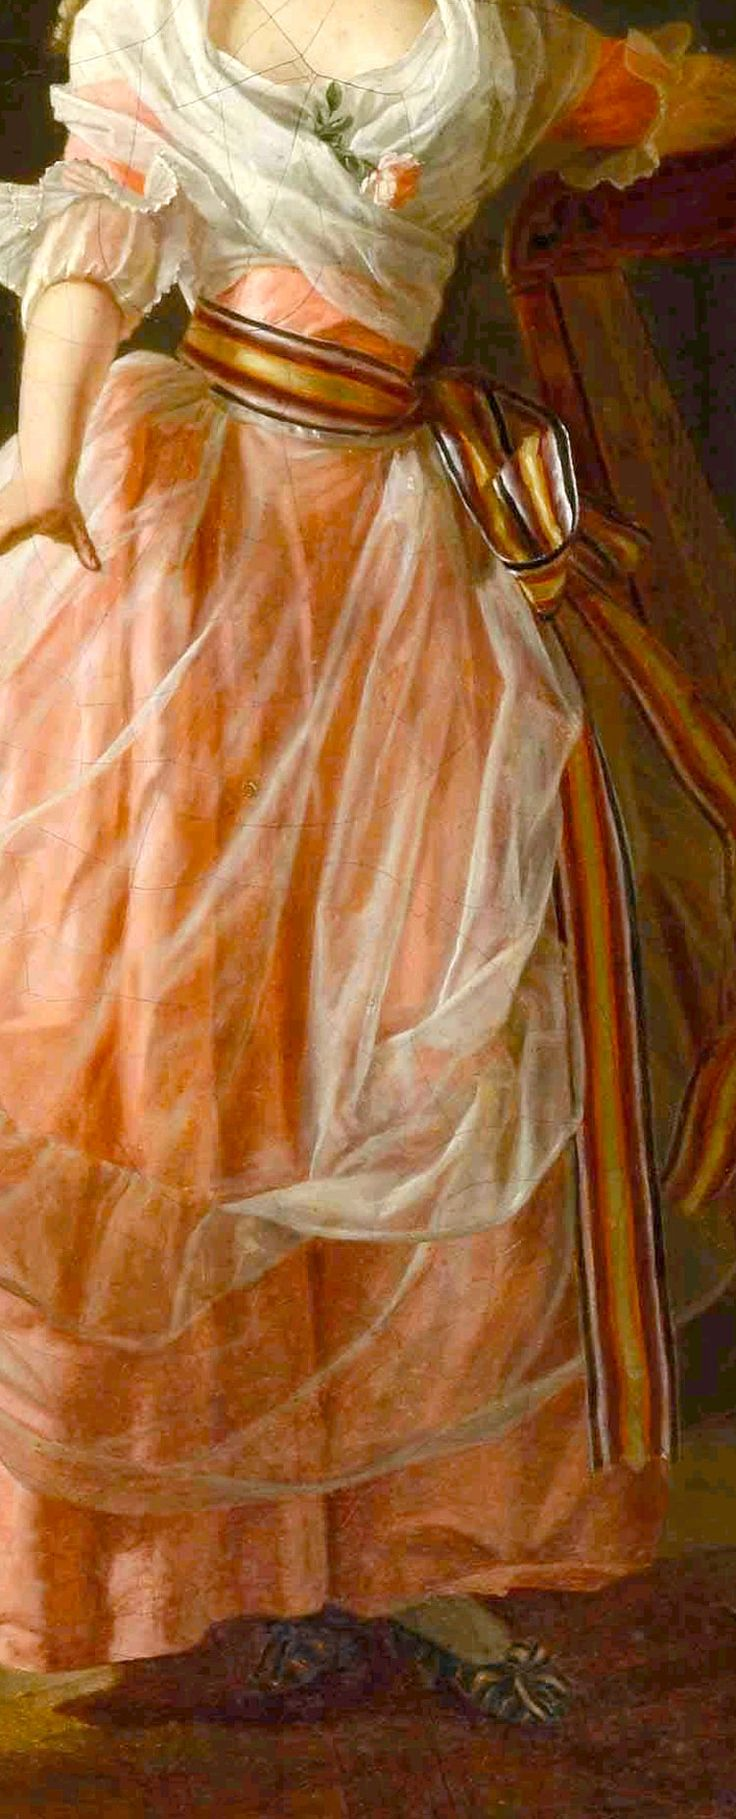 white silk gauze apron with flounce over an pink apricot silk gown with matching white silk gauze ruffle to elbow length tight sleeves, contrasting chocolate brown, gold and red striped length of ribbon tied about tiny waist and extending the length of gown, matching striped shoes, white silk gauze fichu crossed over breasts (and tied in back) Detail from La jeune musicienne, 1788, Michel Garnier